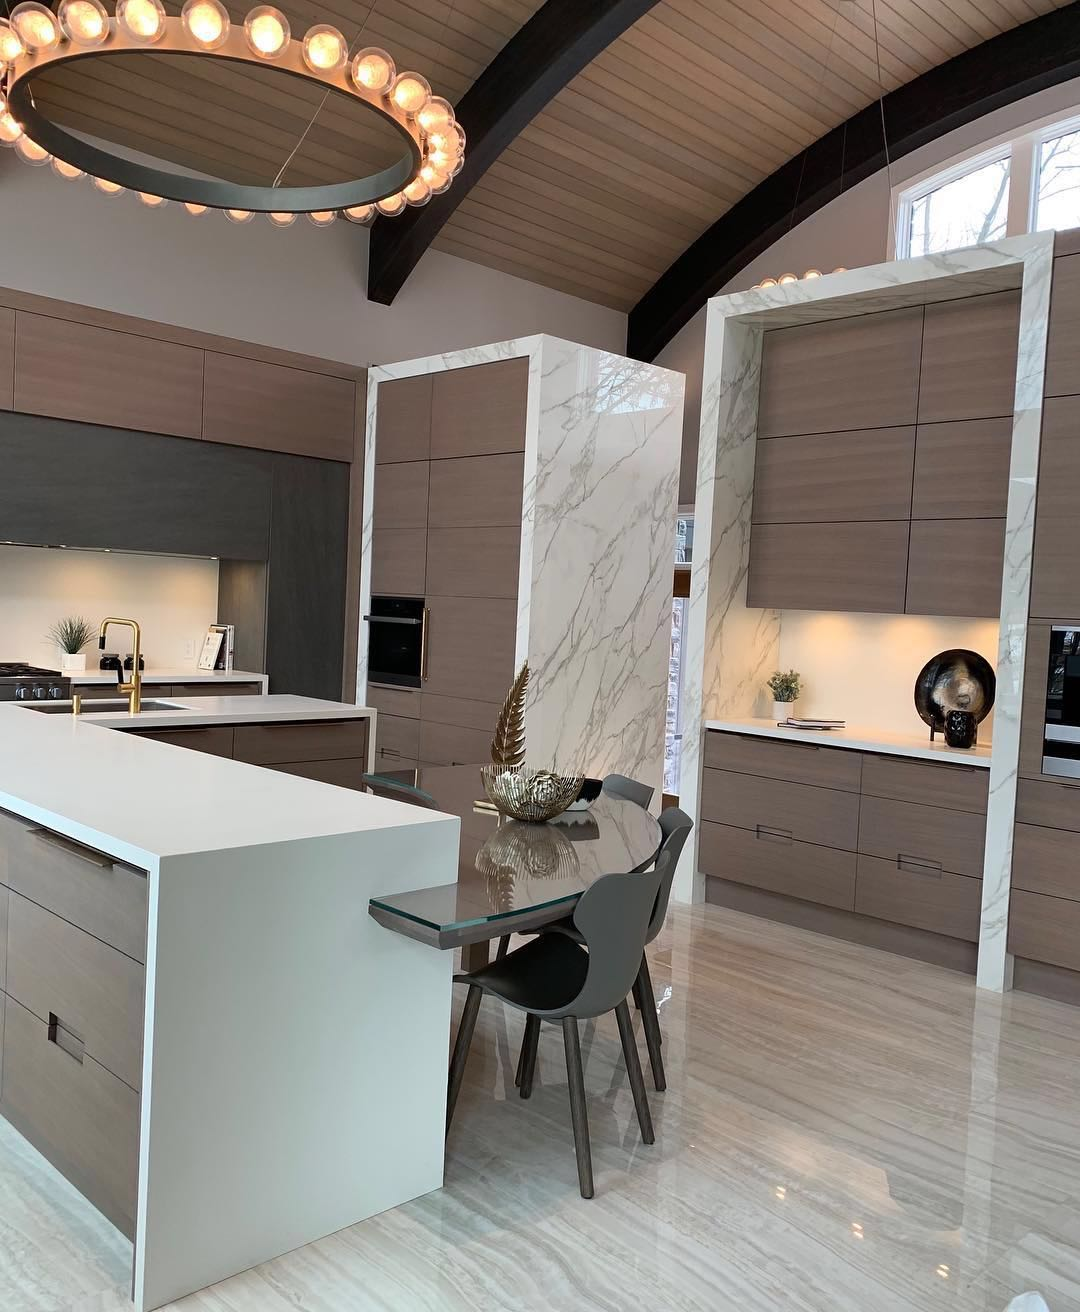 Island & Countertops - Neolith Arctic White | Upper Stove Wall - Neolith Basalt Black | Cabinet Surround - Neolith Calacatta